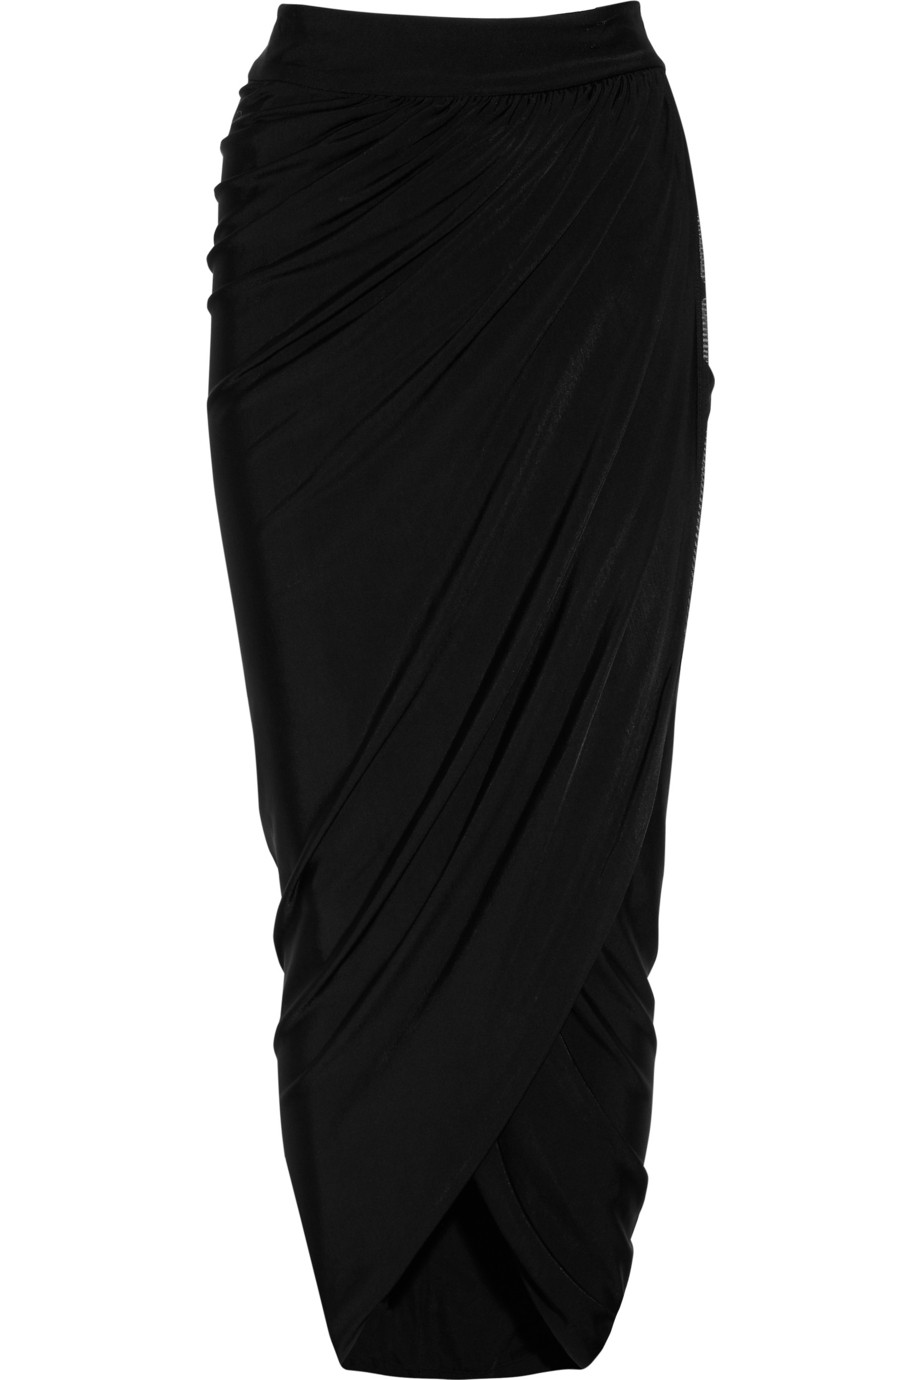 Just cavalli Crepejersey Maxi Wrap Skirt in Black | Lyst